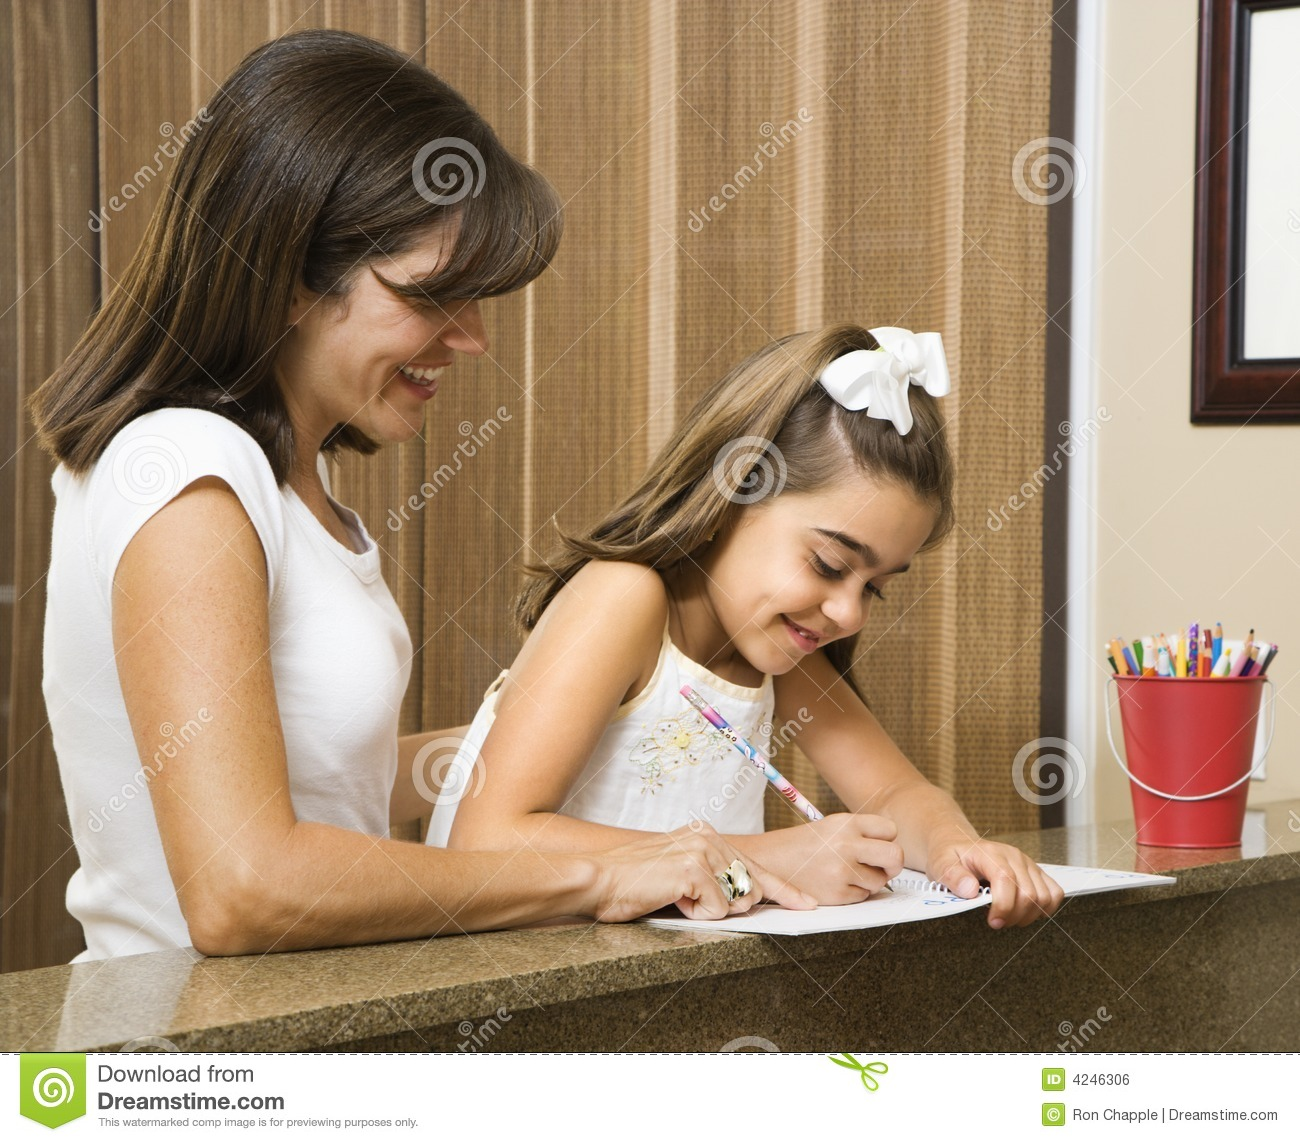 Mother daughter house plans hot girls wallpaper for Mother daughter house plans